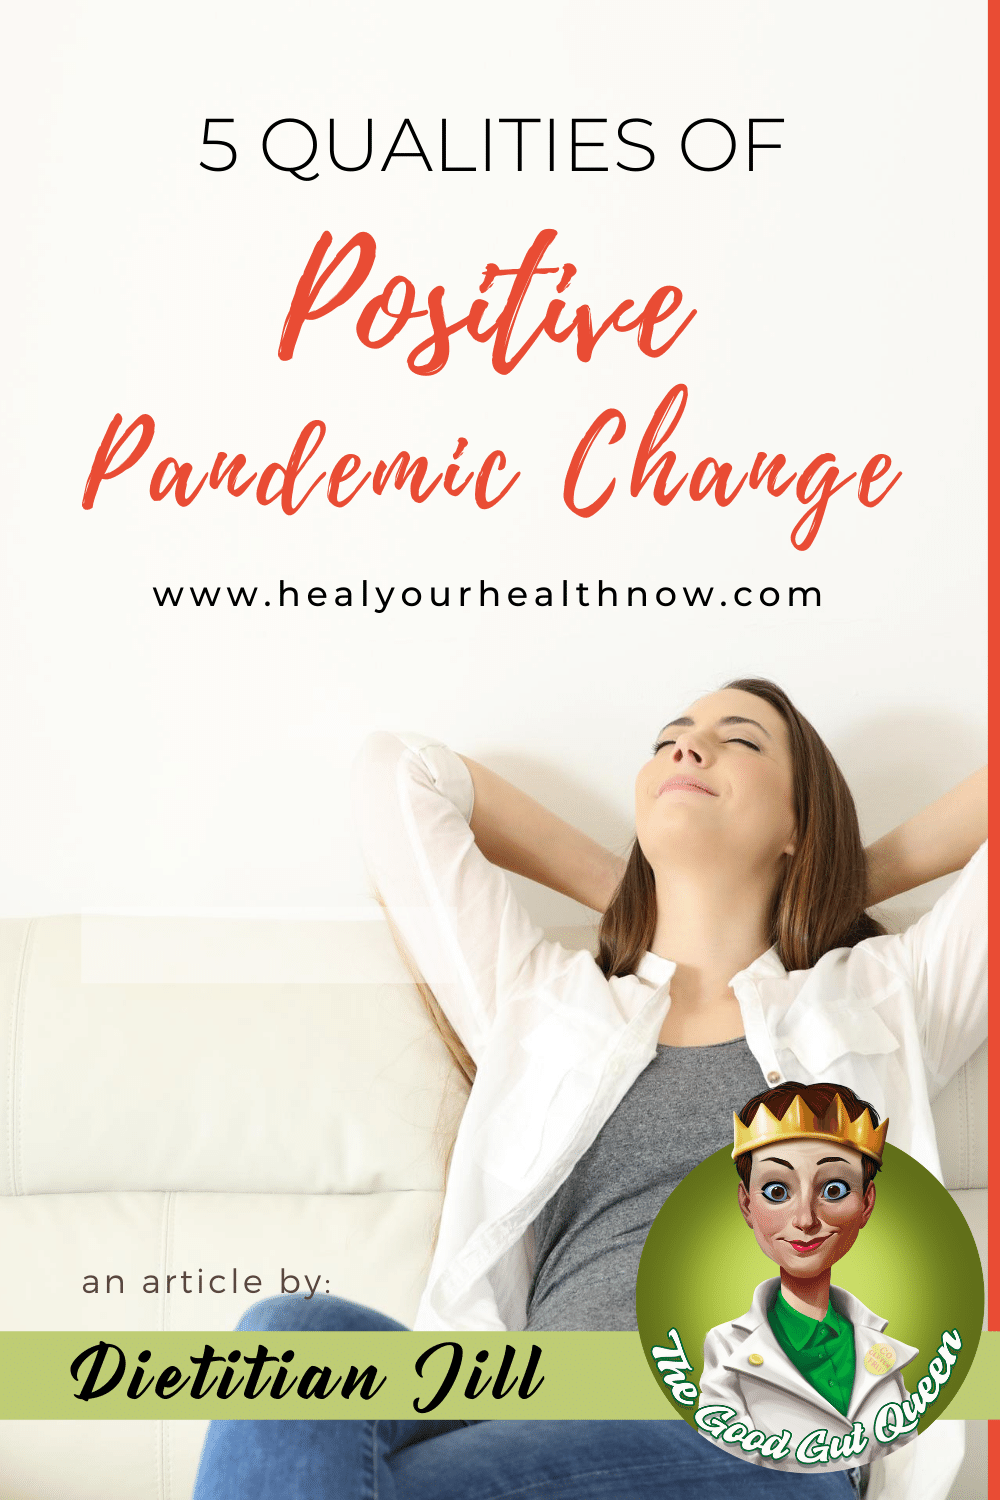 5 Qualities of Positive Pandemic Change